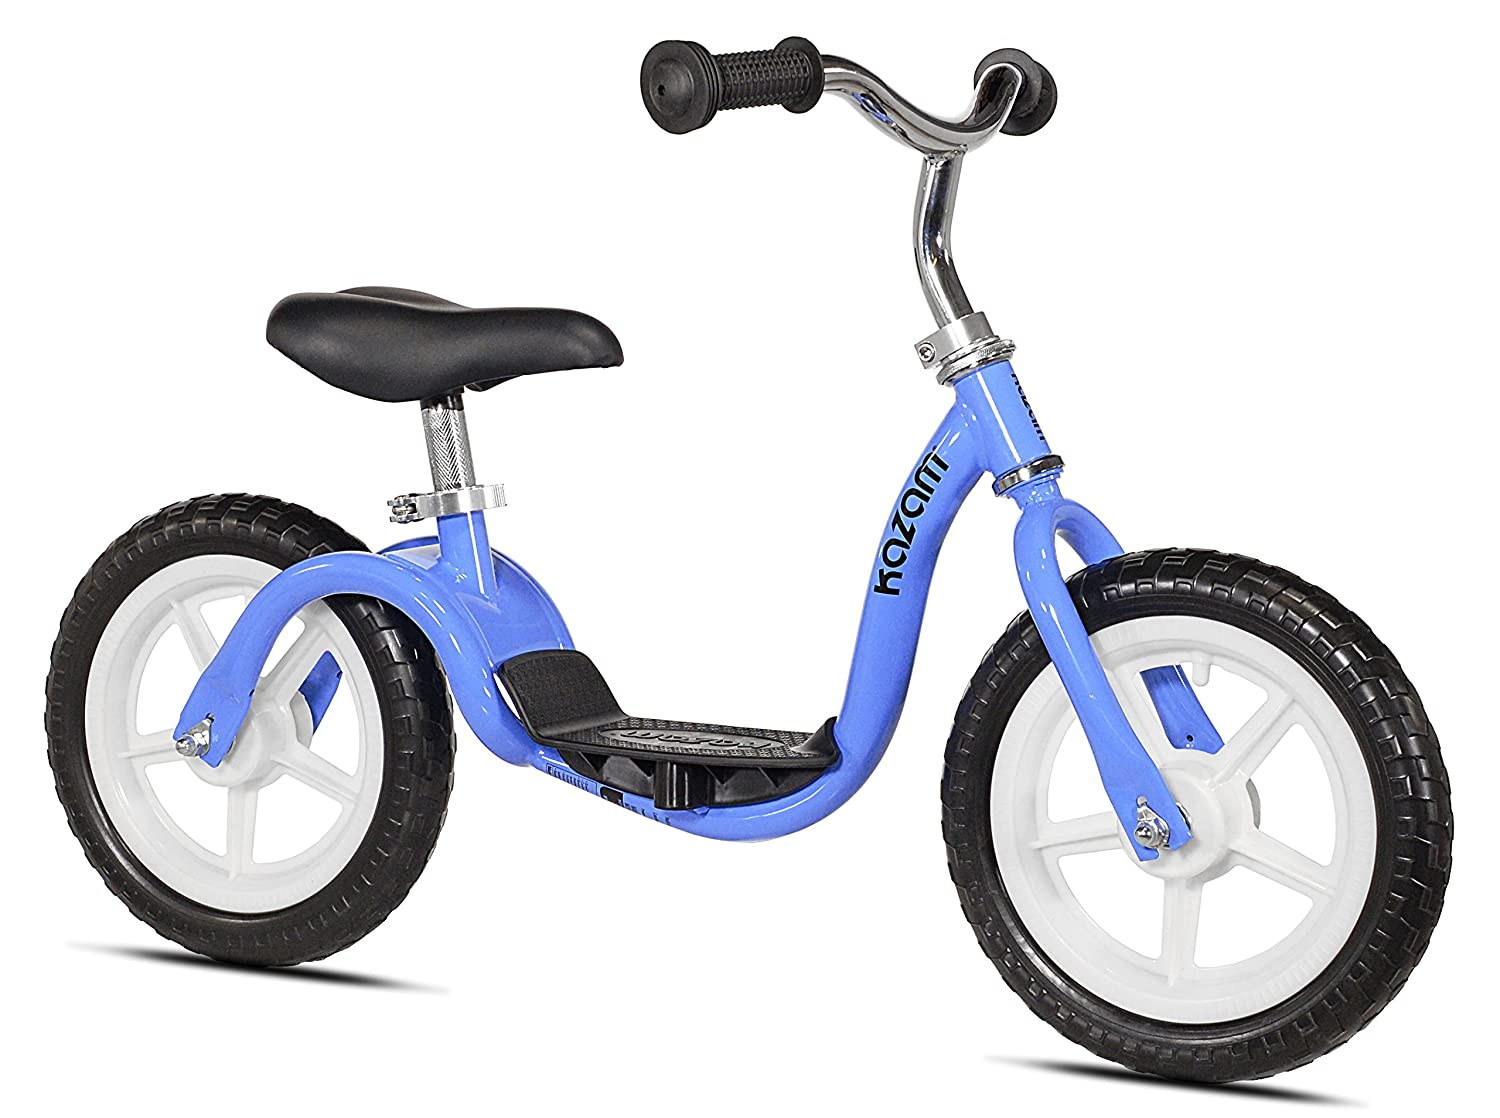 KaZAM v2e No Pedal Balance Bike - Best balance bike under $100